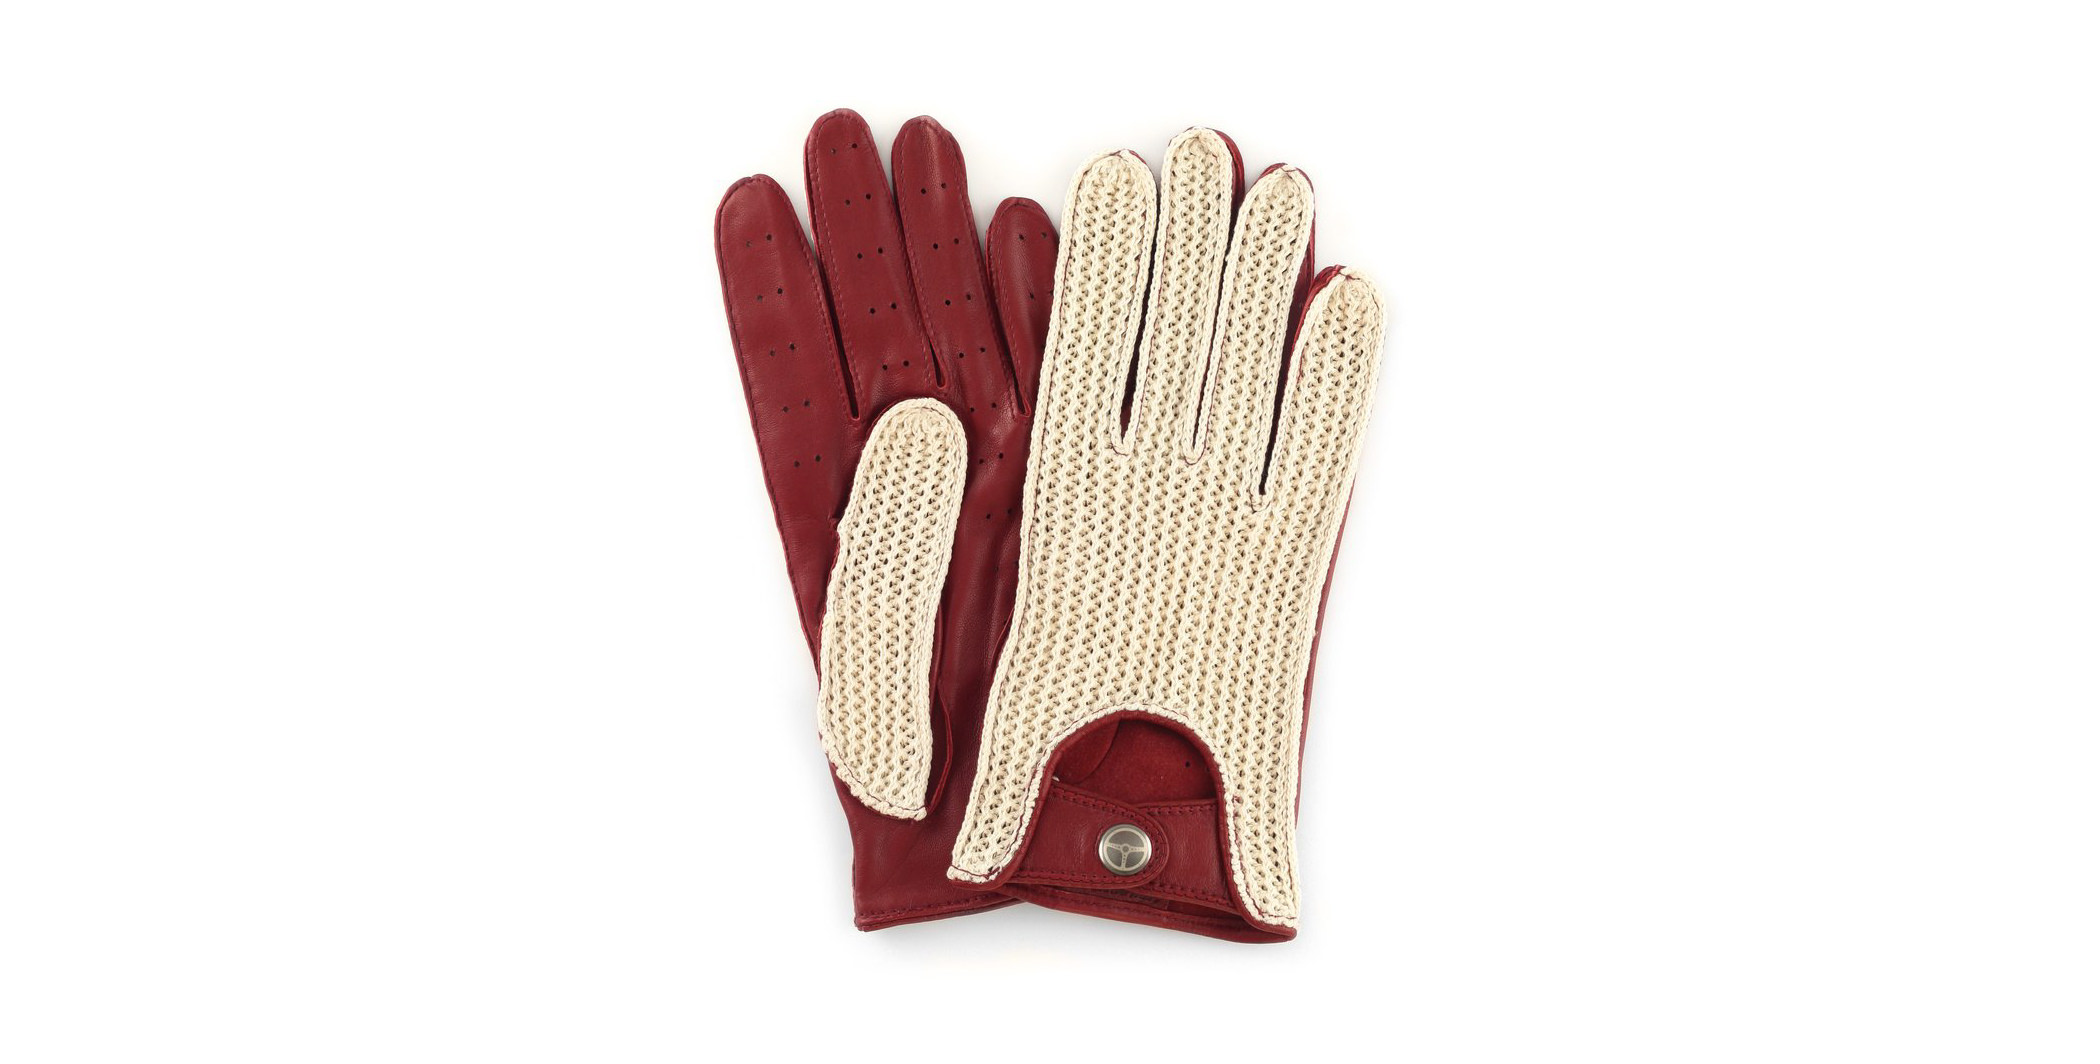 Heritage Driving Gloves Outlierman